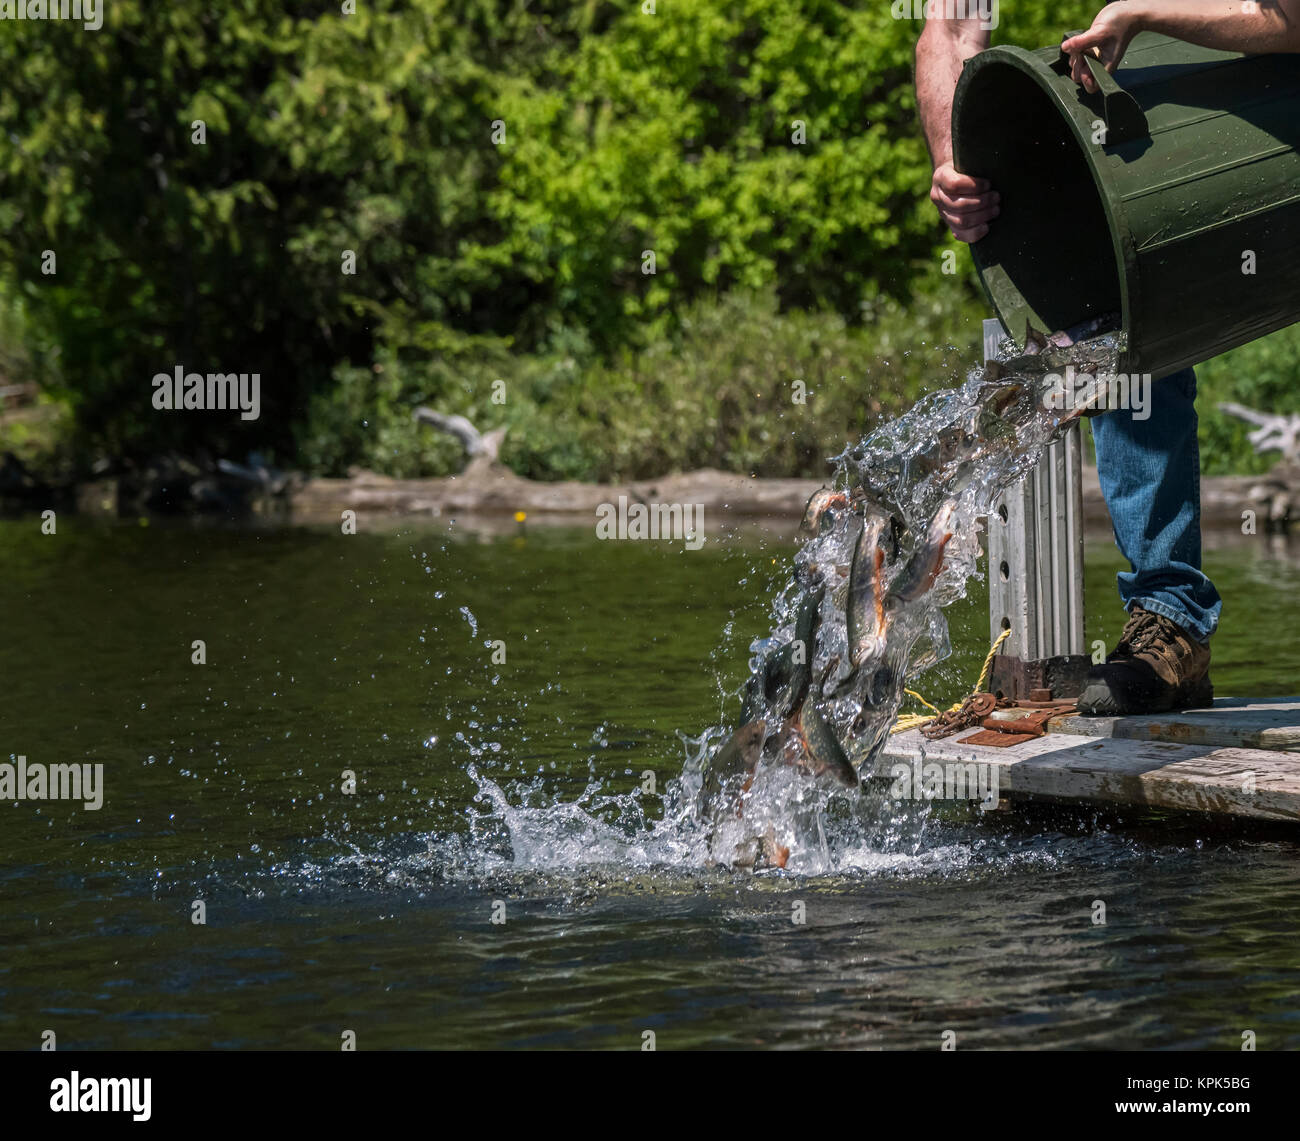 A man pours Speckled Trout (Salvelinus font) out of large pail to stock a lake; Redbridge, Ontario, Canada - Stock Image